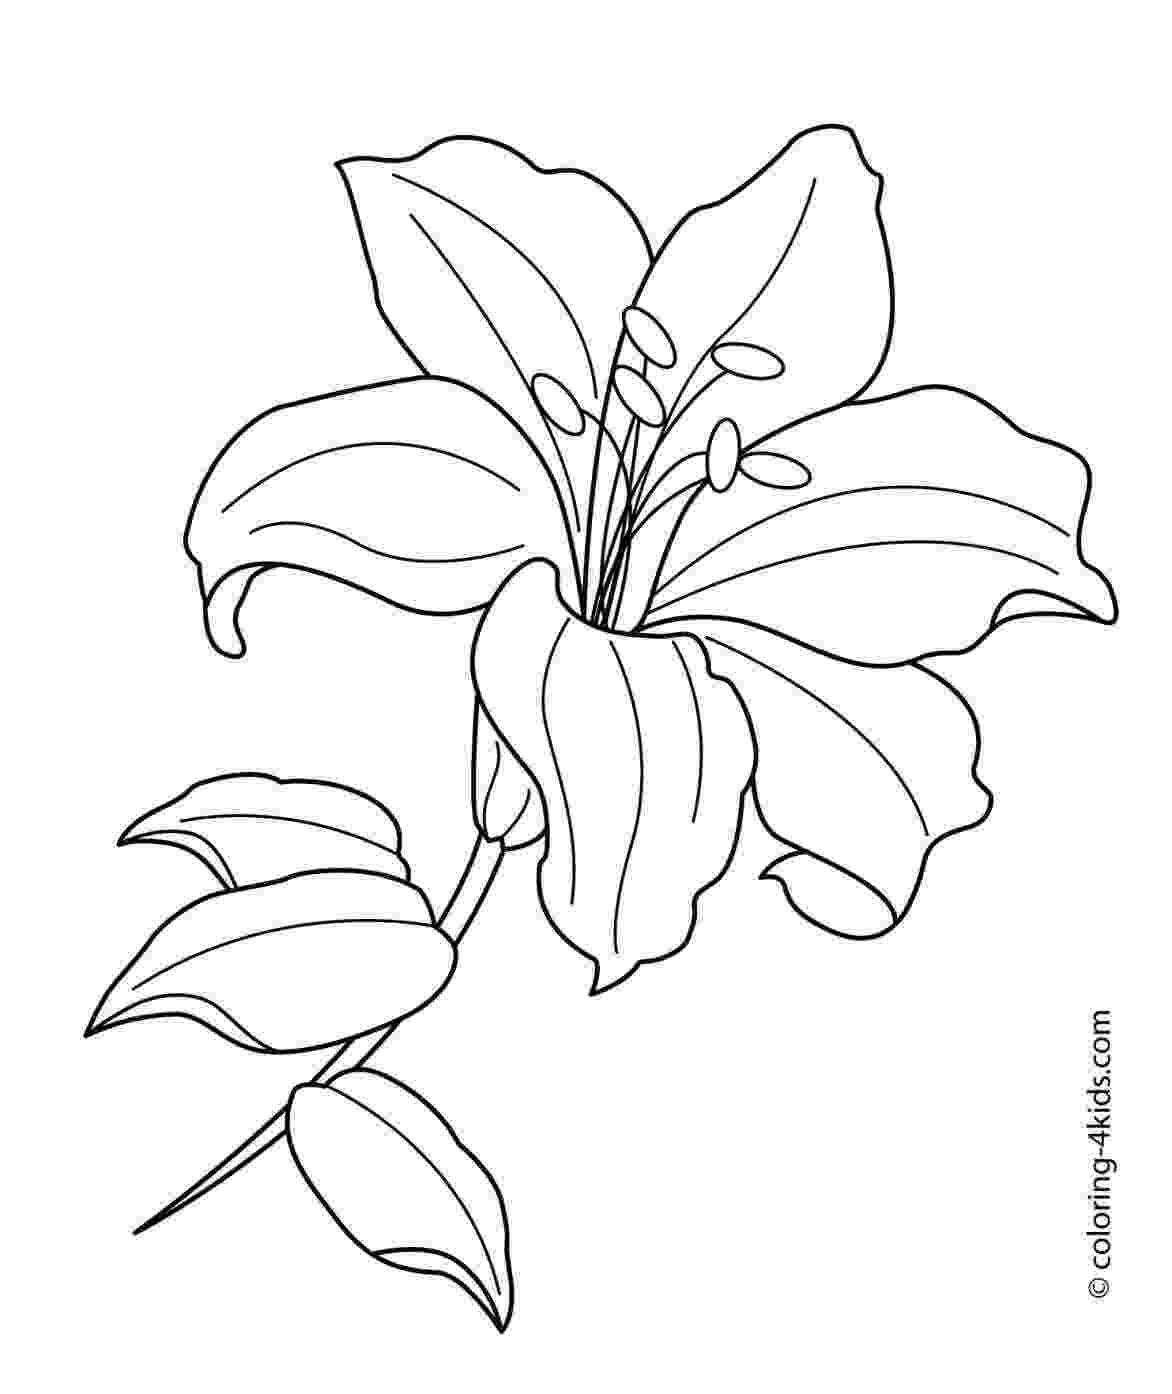 realistic flower coloring pages realistic sunflower coloring page educative printable coloring realistic pages flower